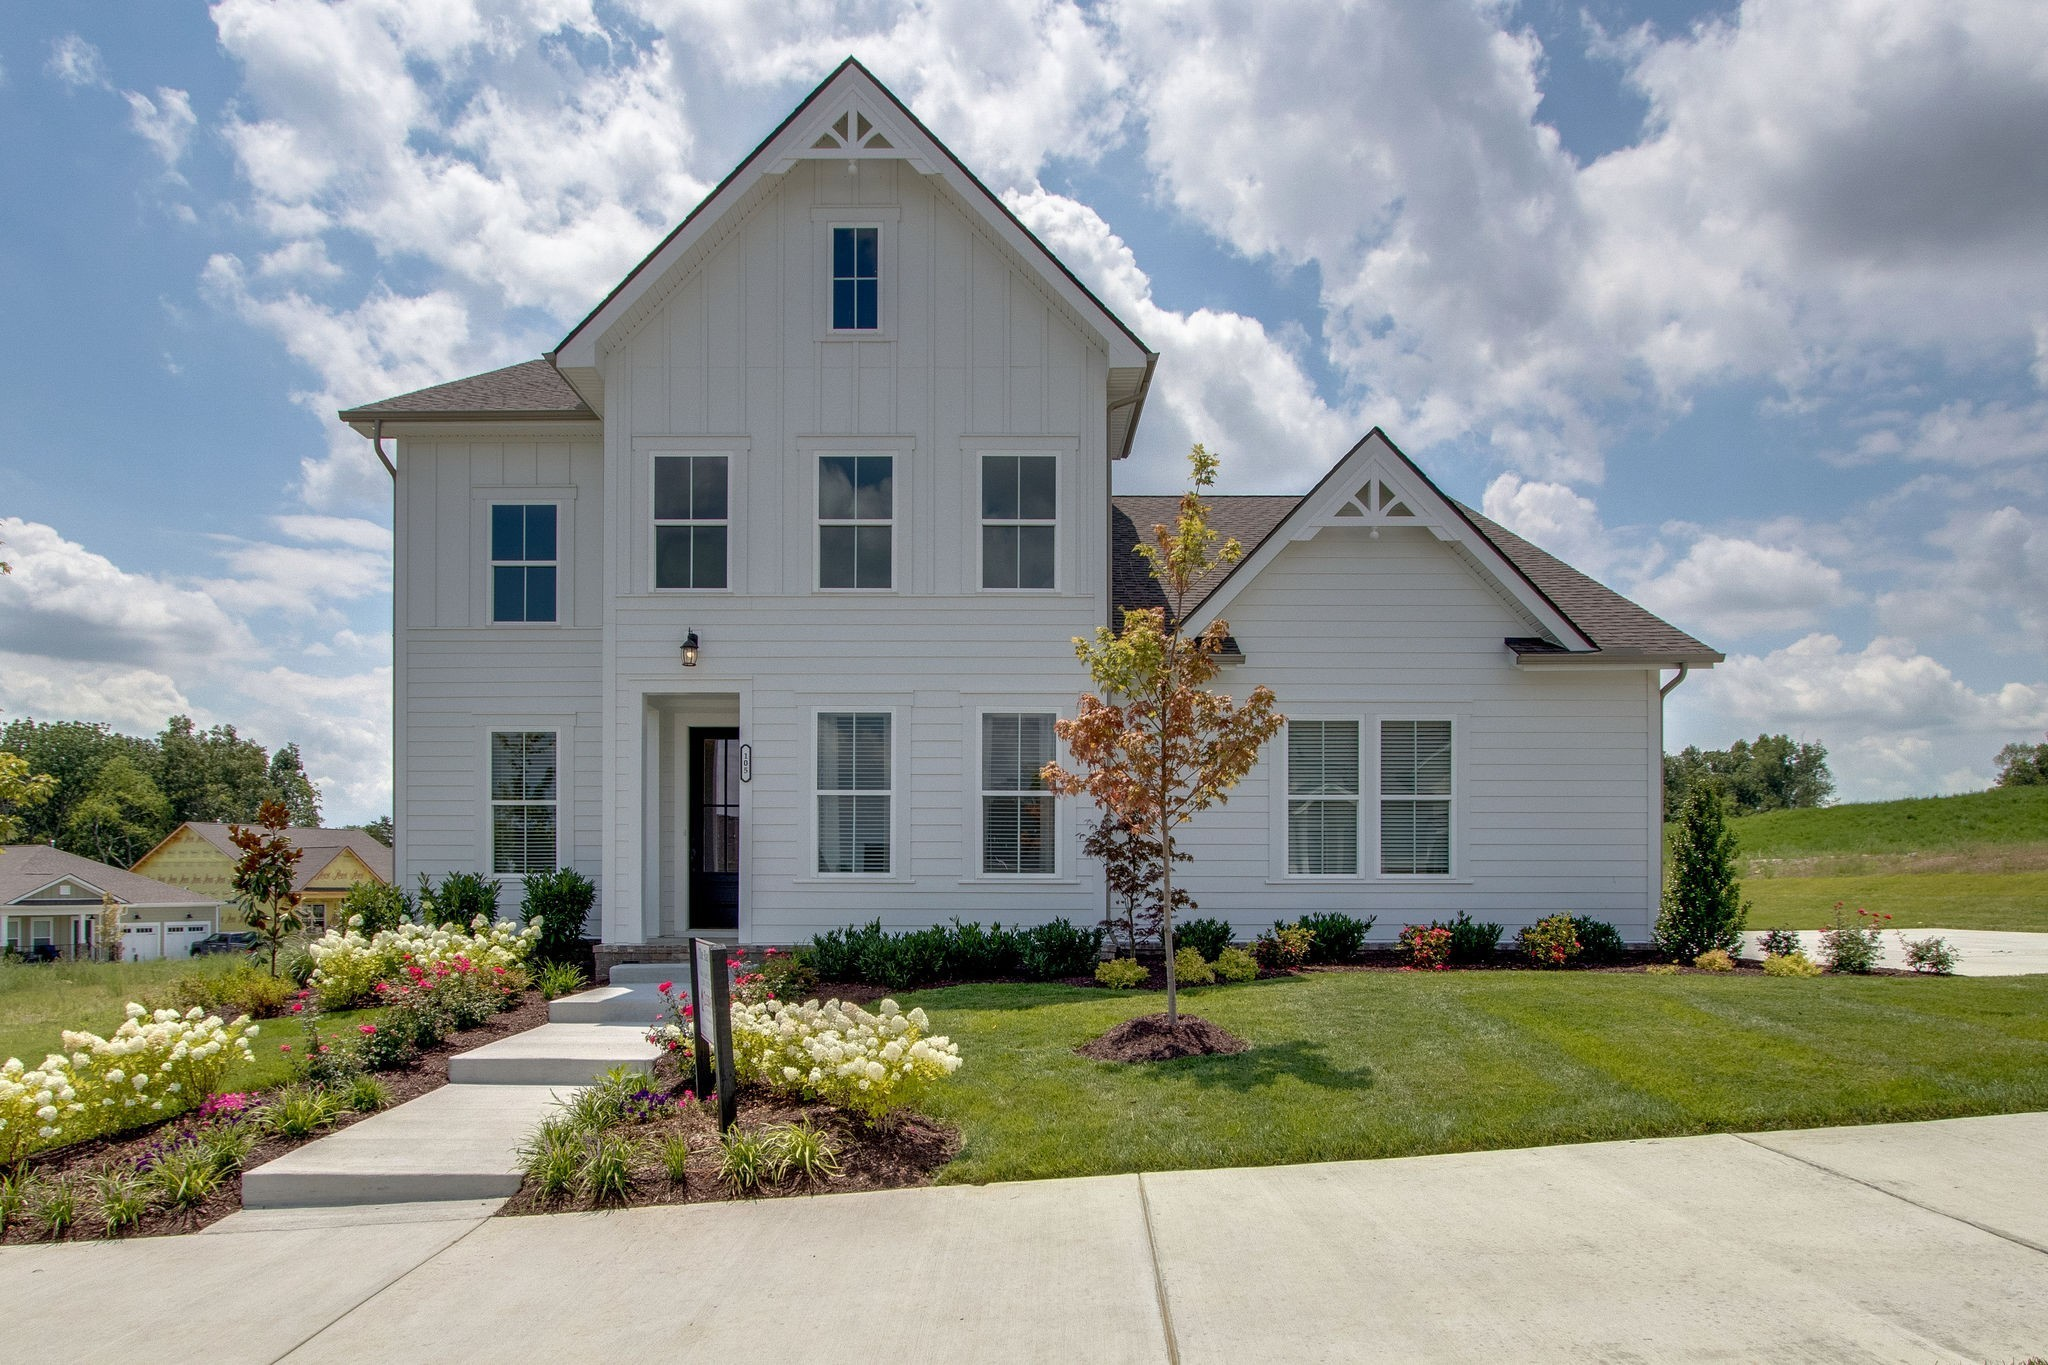 Beautiful new 5br Home in quiet, private neighborhood. 2 Master Suites, 2 br down plus study, Bonus rm has 2 sections, Covered front and back porch. 10' clgs down, 8' doors, Quartz everywhere, private back yard, 3 car Garage, Lots of tile and hardwood, Separate study down, Upgraded appliance pack, Exterior fireplace Photos are of like floor plan, different house Franklin Synergy will pay up to $6000 in buyer's cc under approved conditions